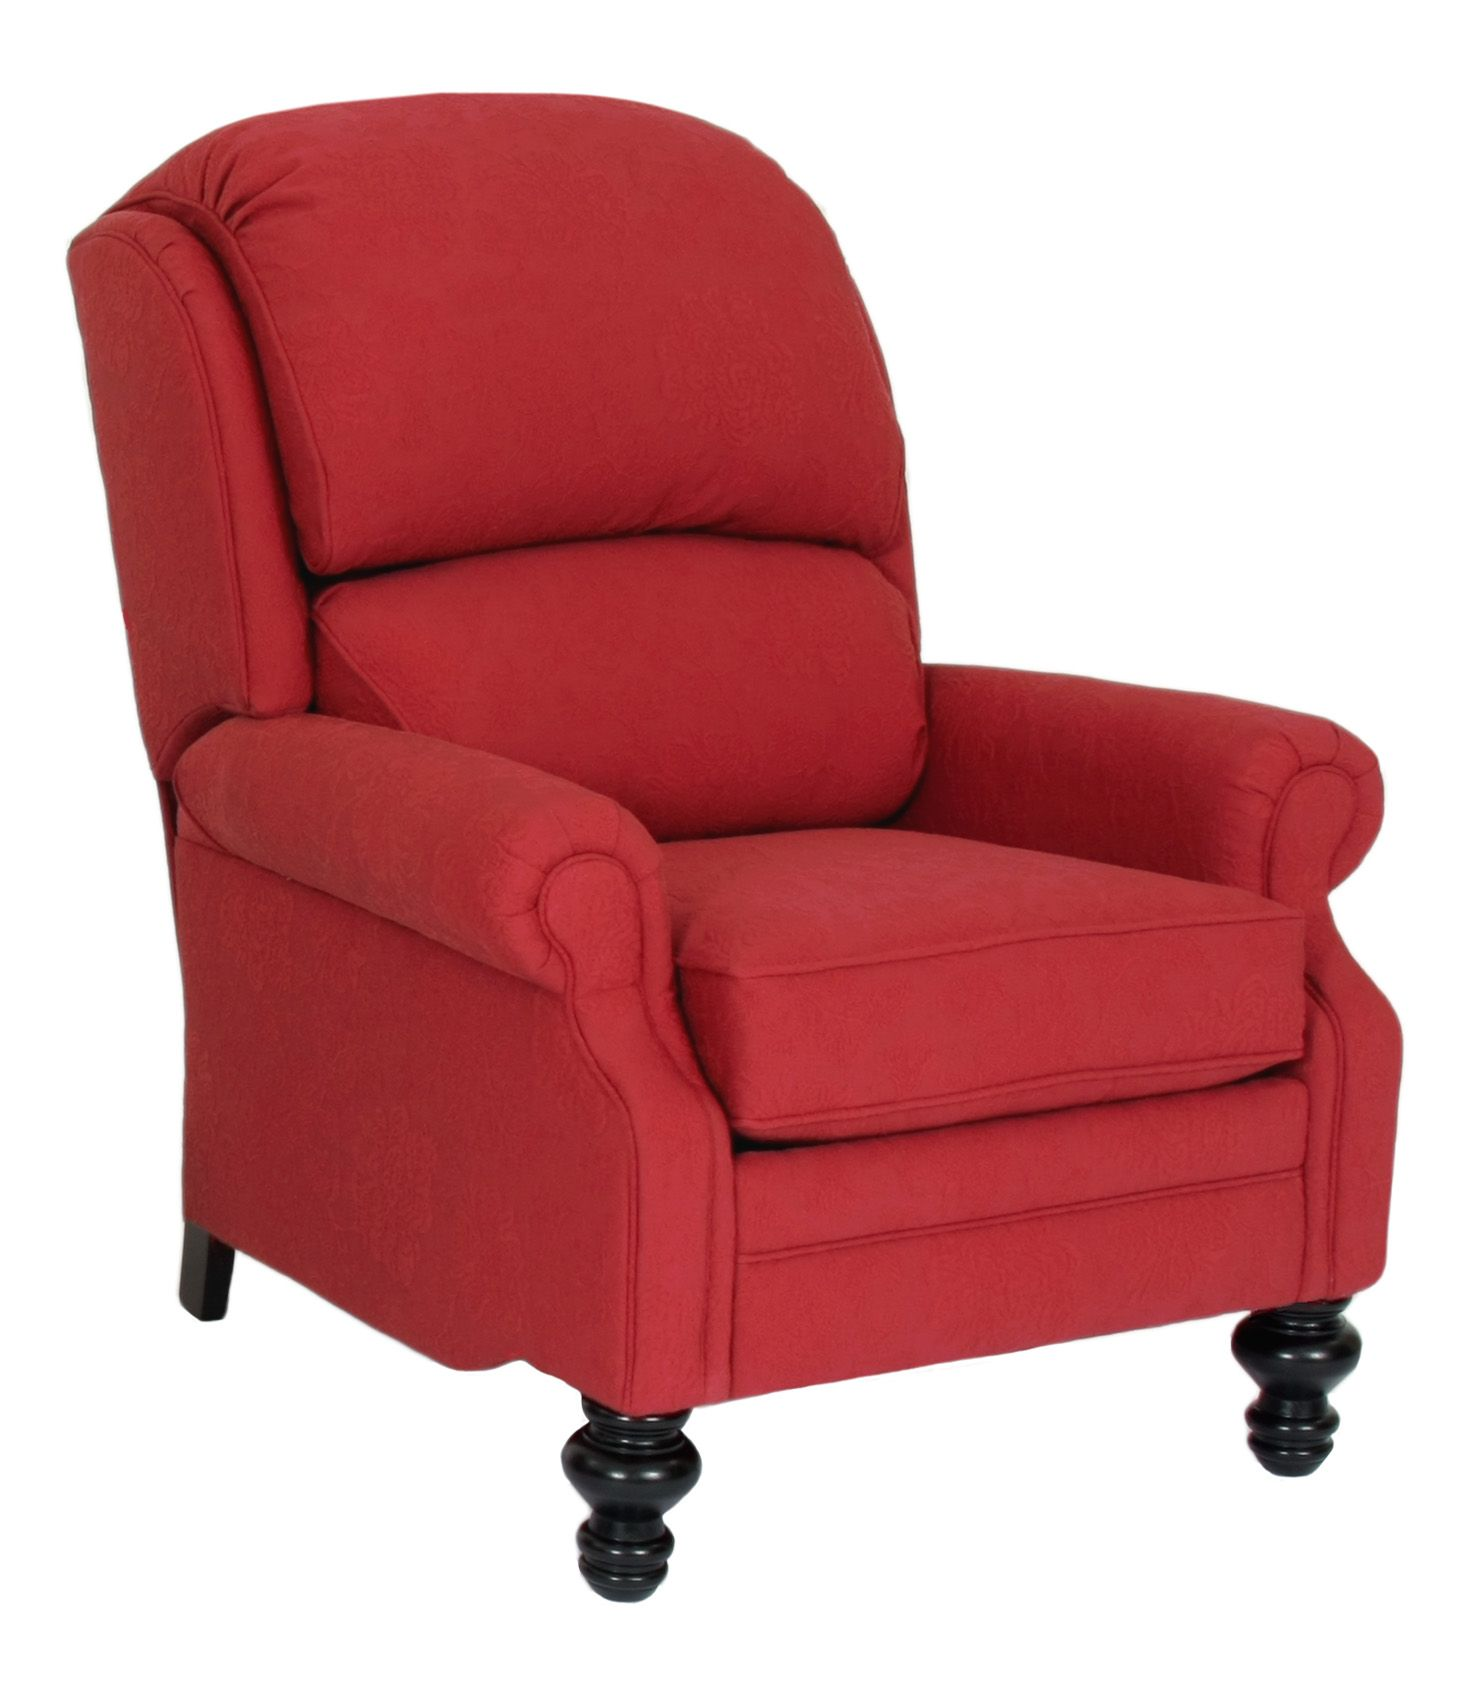 Norwalk Recliners Norwalk Furniture Walton Recliner Norwalk Furniture